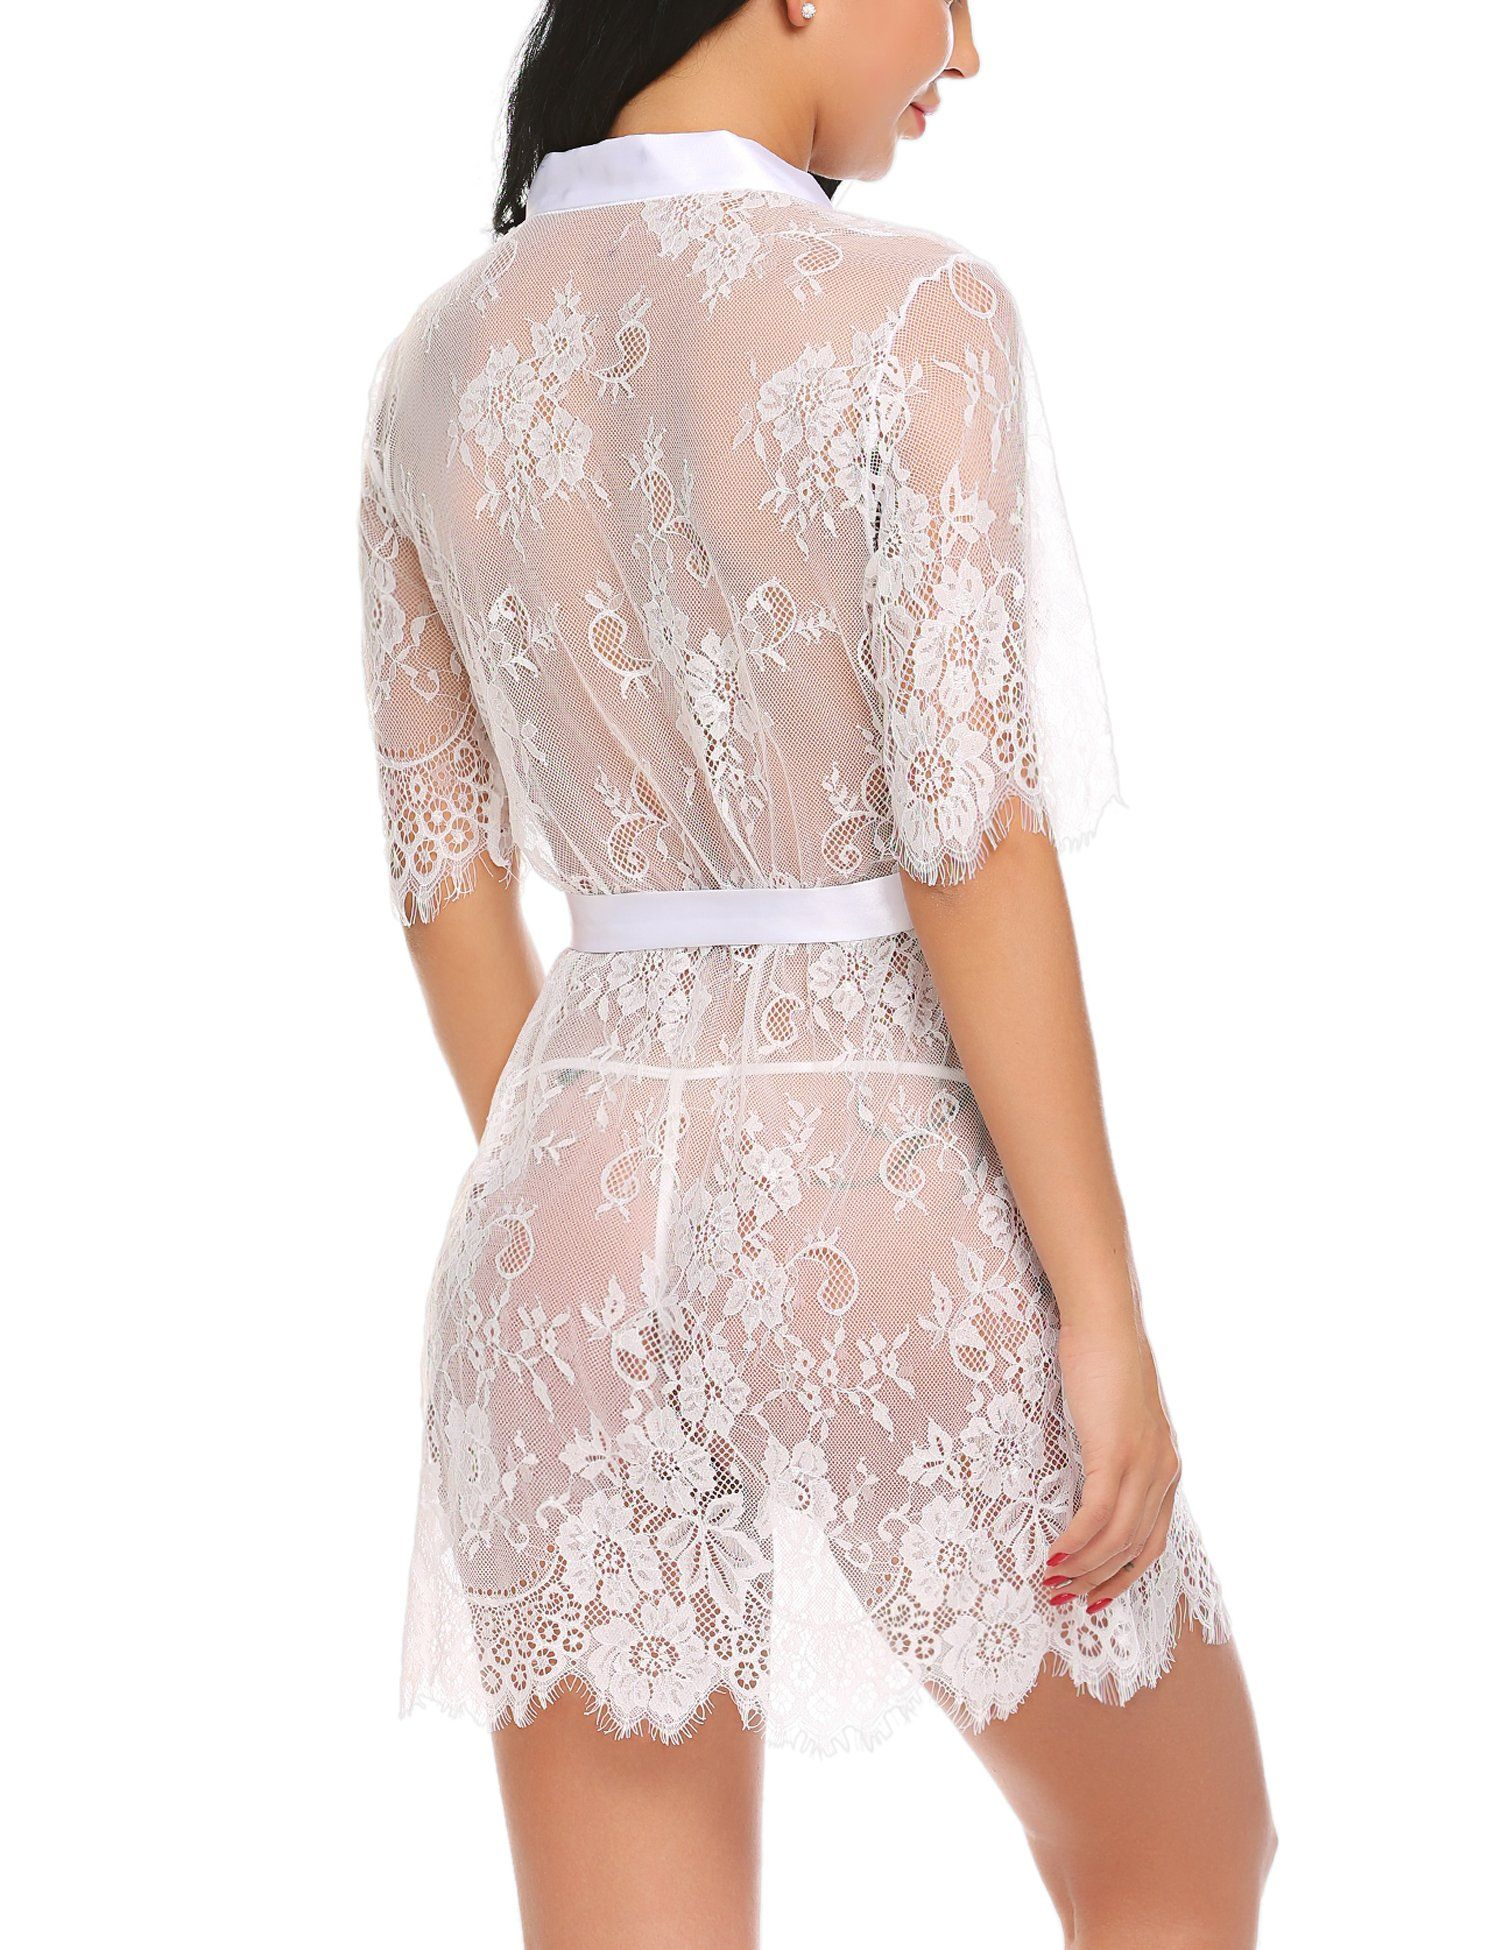 d65cc9be4a2 ADOME Womens Lingerie Kimono Robe Eyelash Lace Babydoll Sheer Nightwear  White S * For more information, visit image link. (This is an affiliate  link) # ...